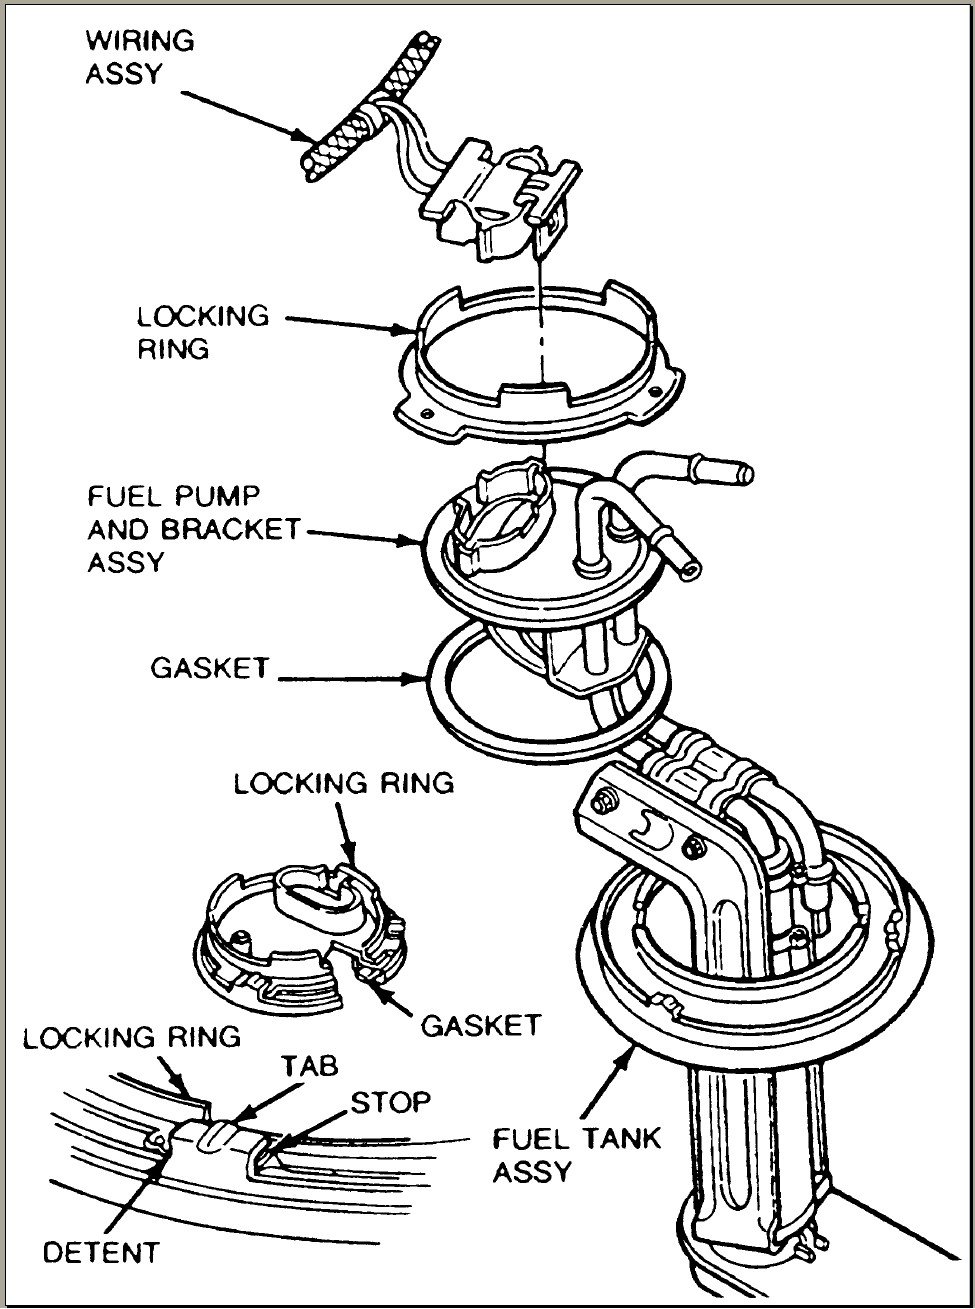 2001 Mustang Fuel Filter Wiring Library Pump Diagram Graphic